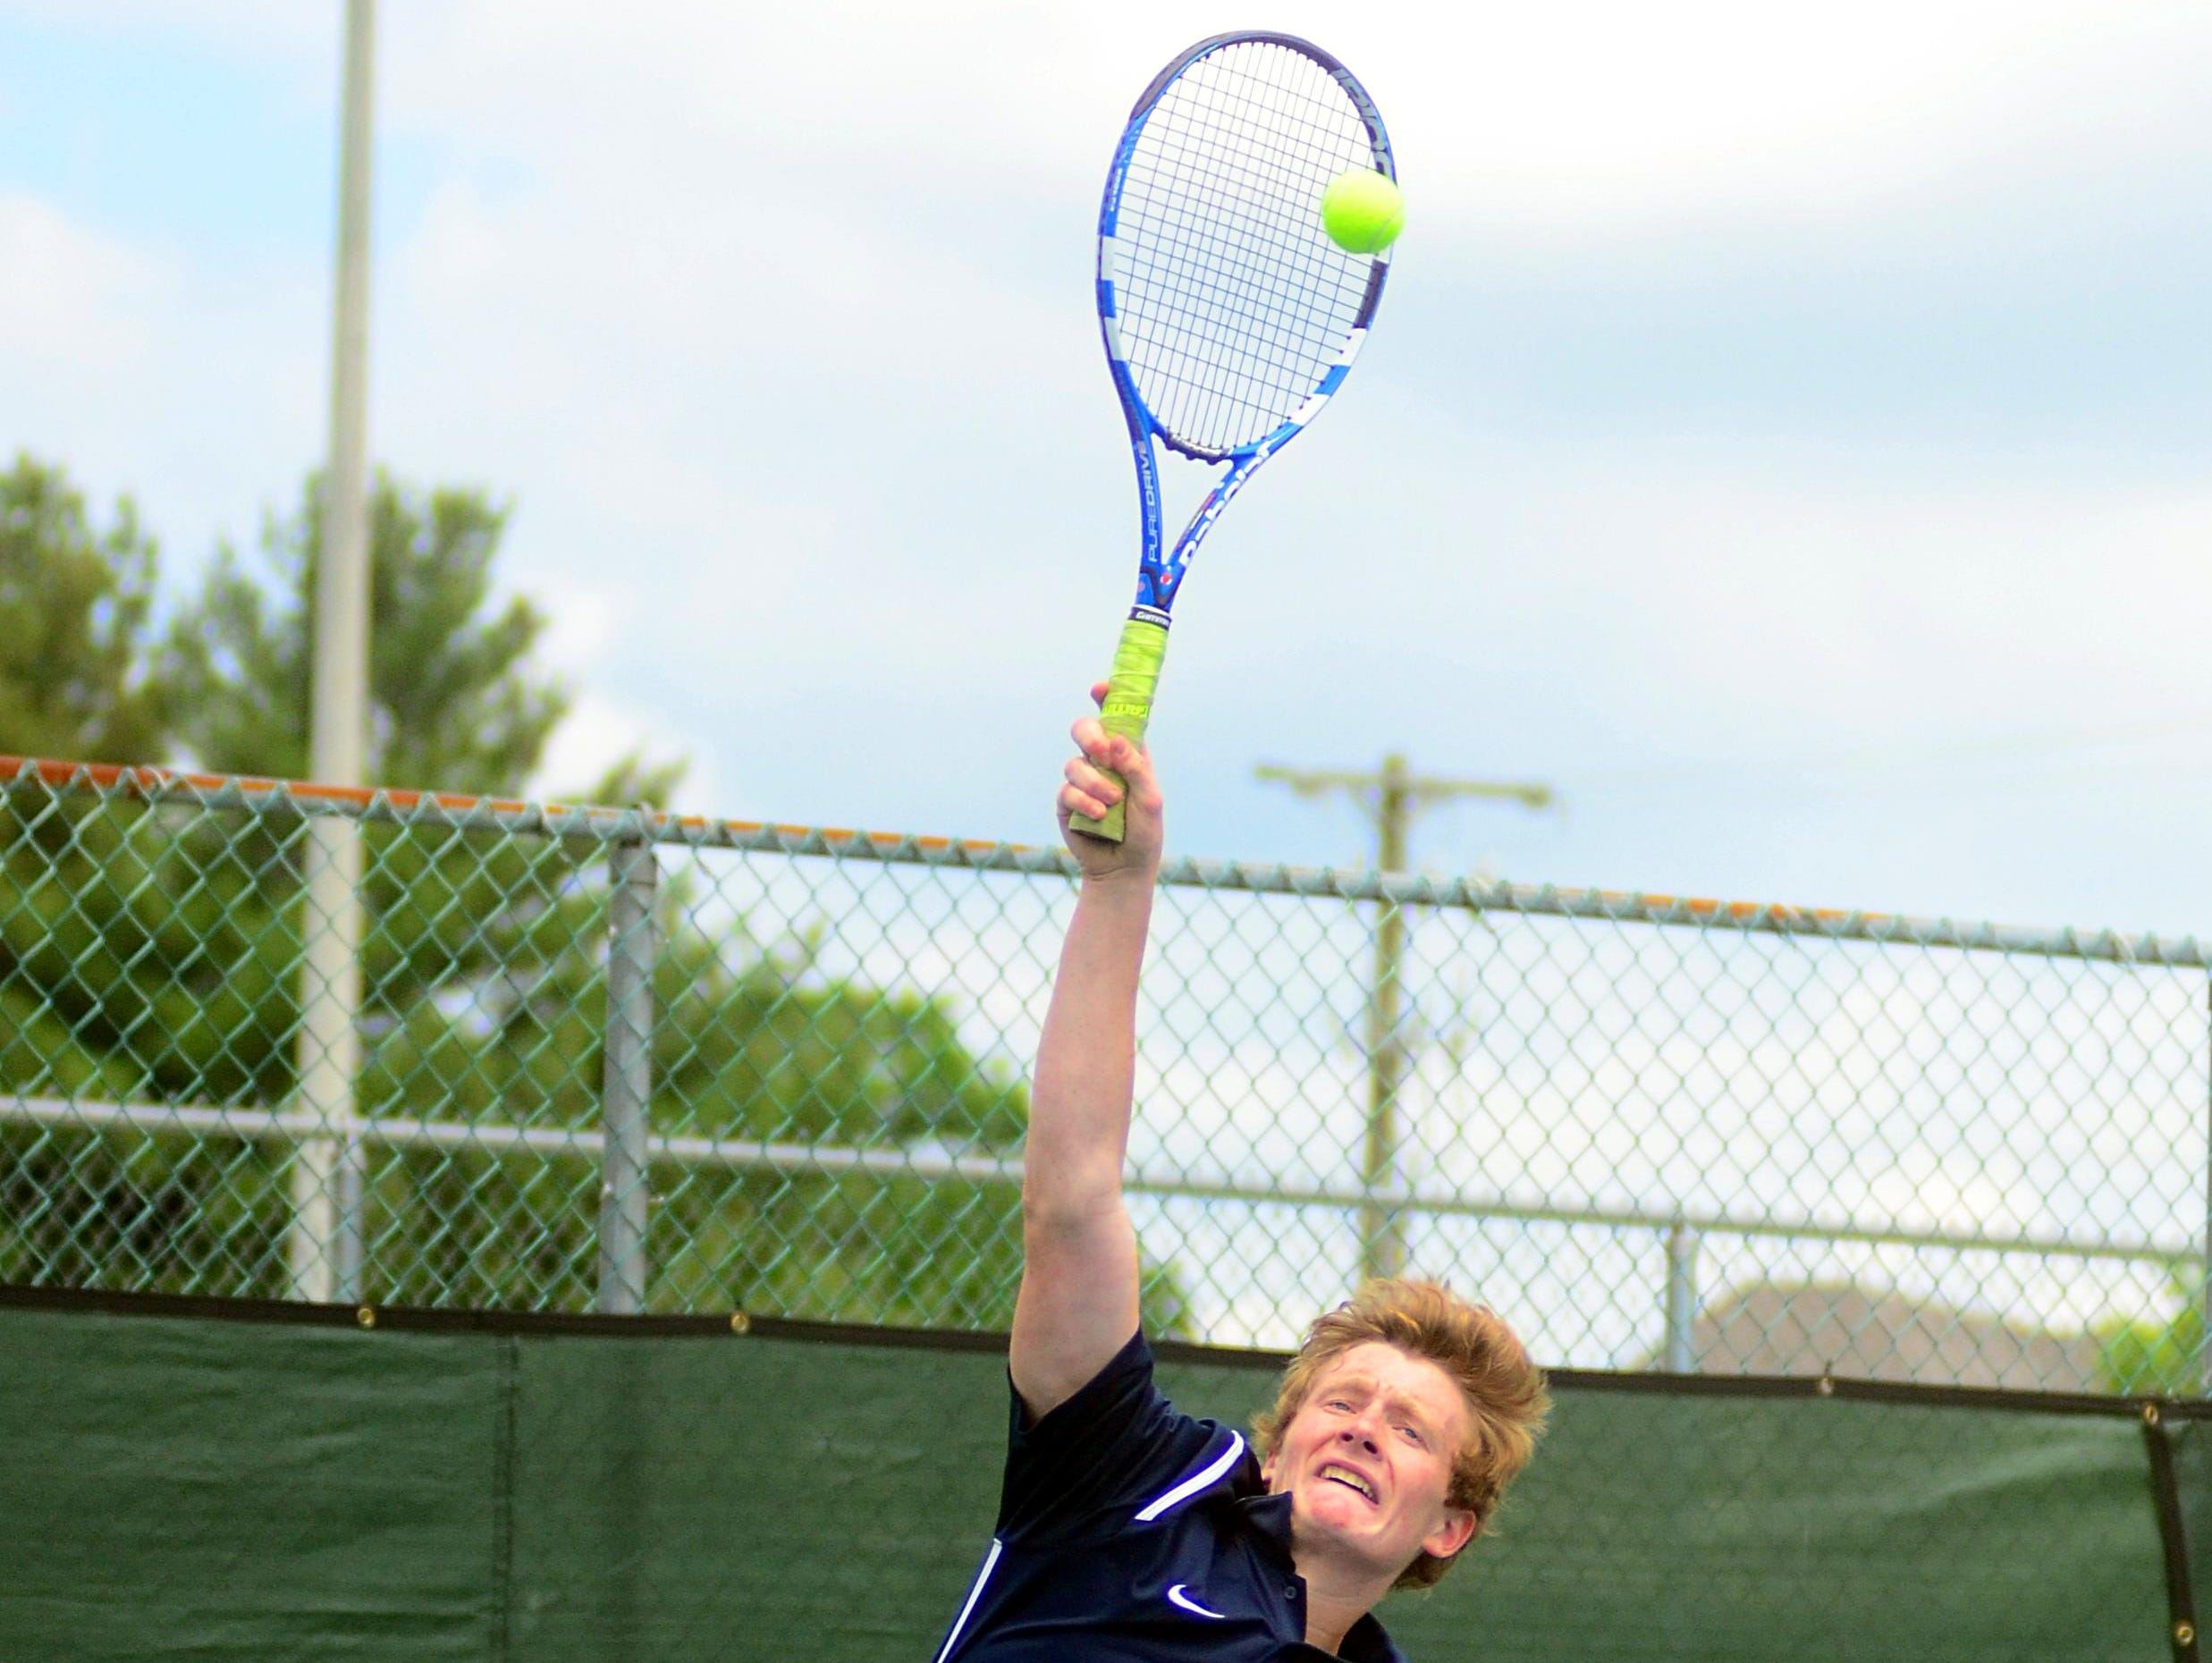 Beech High senior Robert Balgemann hits a serve during his first-round singles match on Tuesday at the District 9-AAA Individual Tennis Tournament. Balgemann advanced to the semifinals before suffering a straight-set loss to Station Camp senior Nathan Watson.